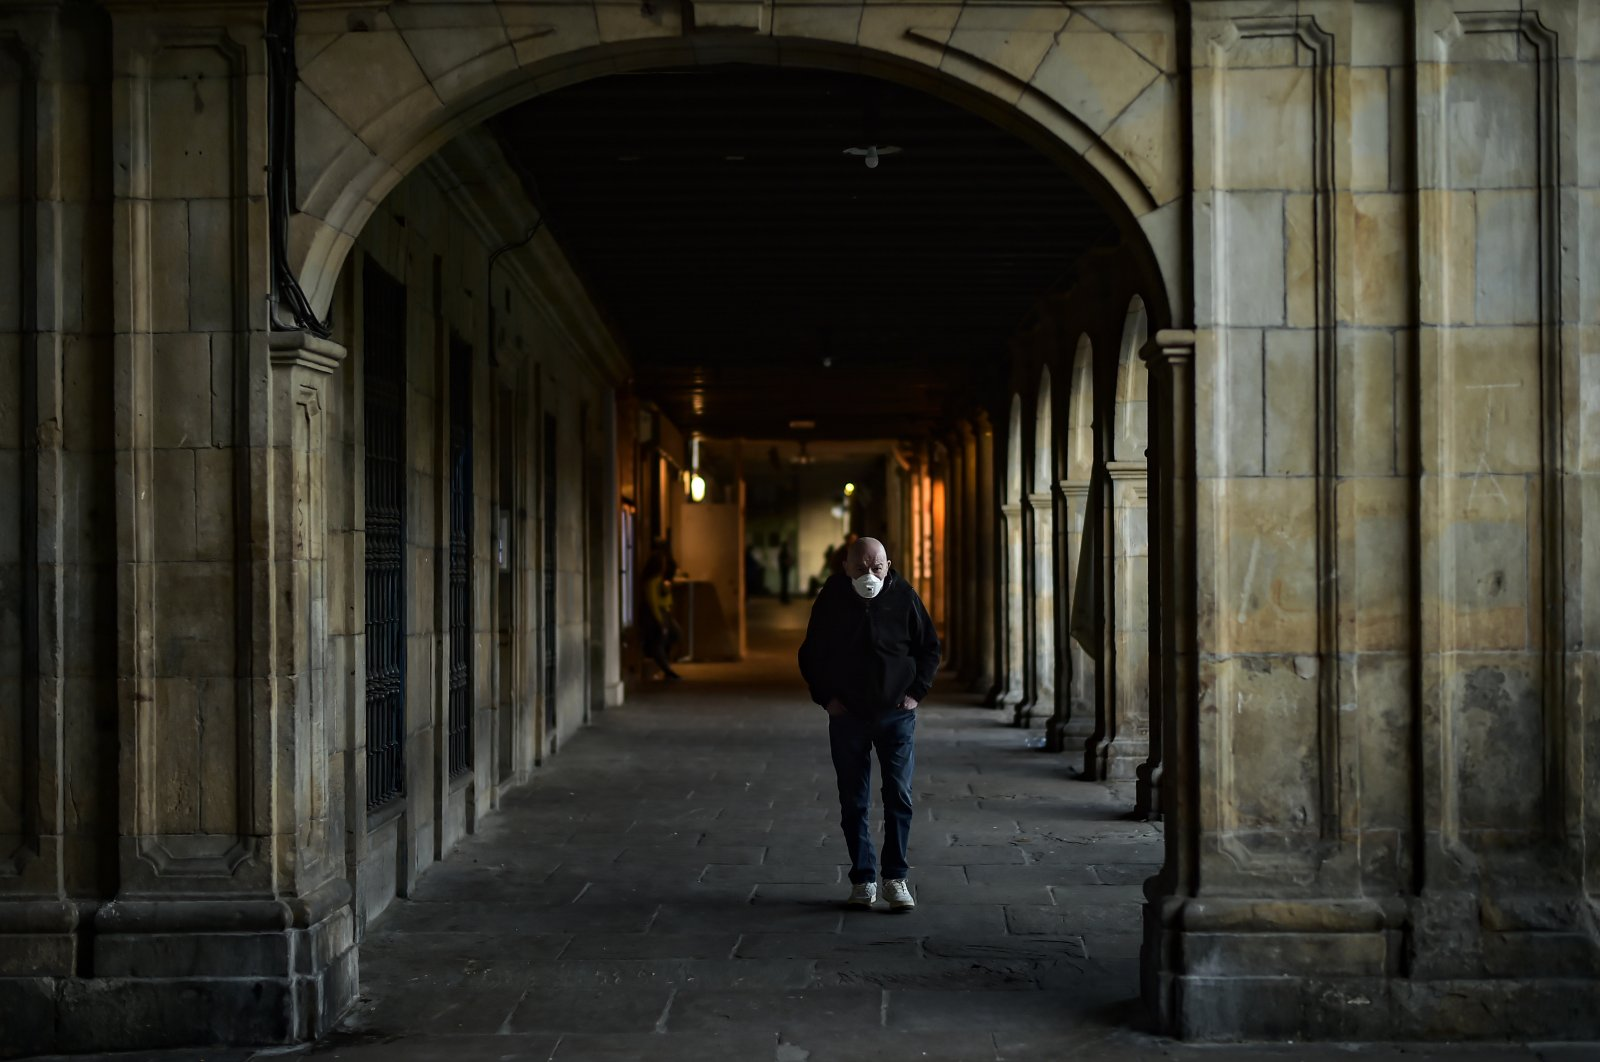 An elderly man wearing face mask to protect against coronavirus walks along ancient porch of the old city, in Pamplona, northern Spain, Wednesday, May 13, 2020. (AP Photo)